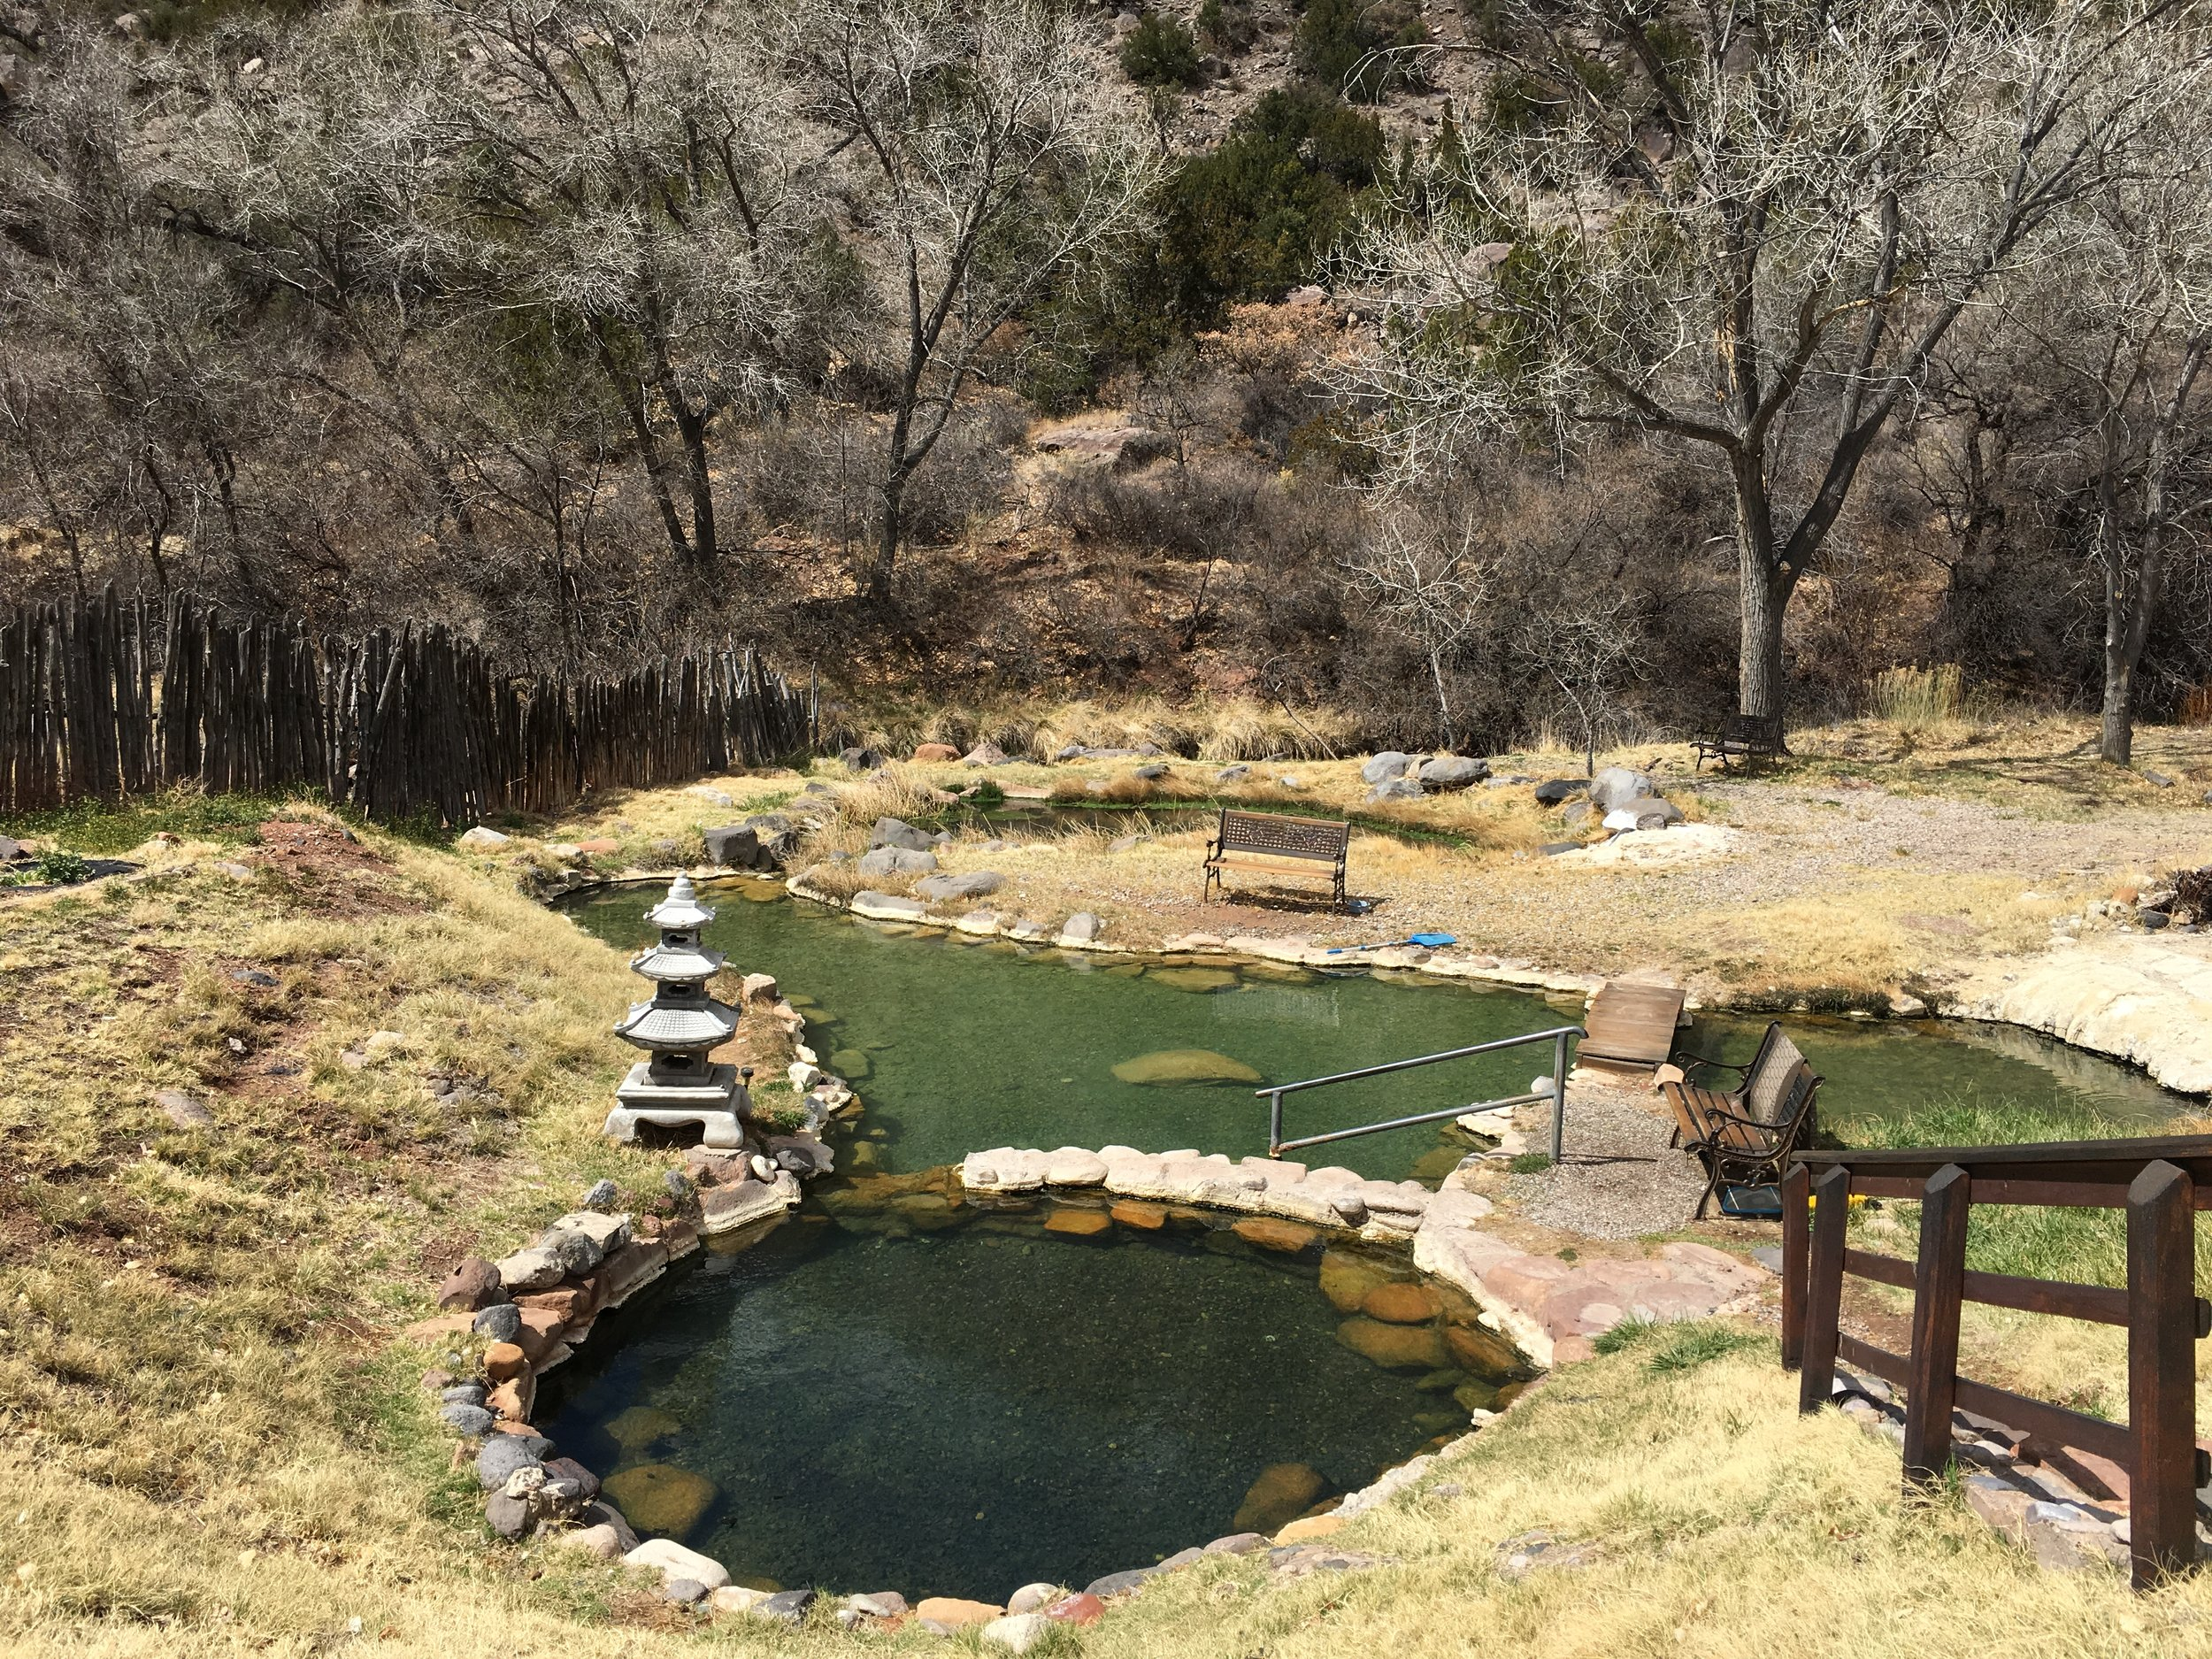 The hot springs on a sunny day